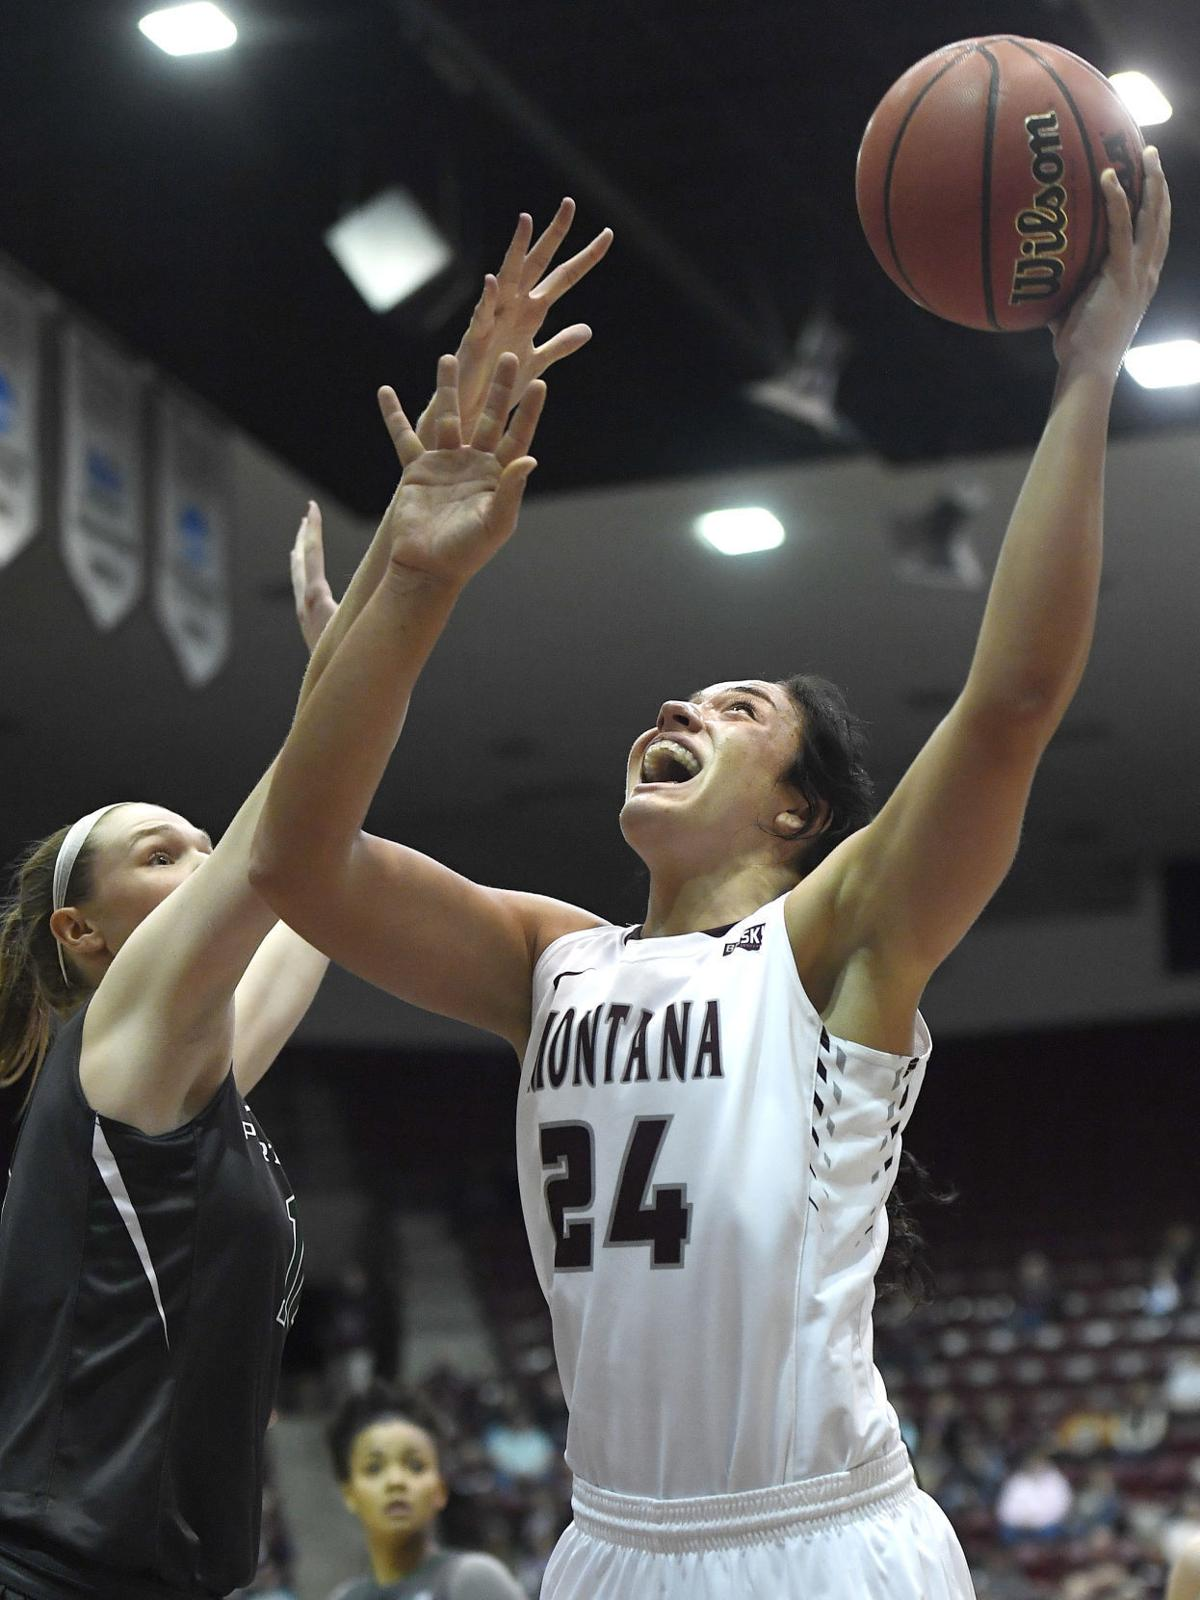 011418 lady griz vs PSU-1-tm.jpg